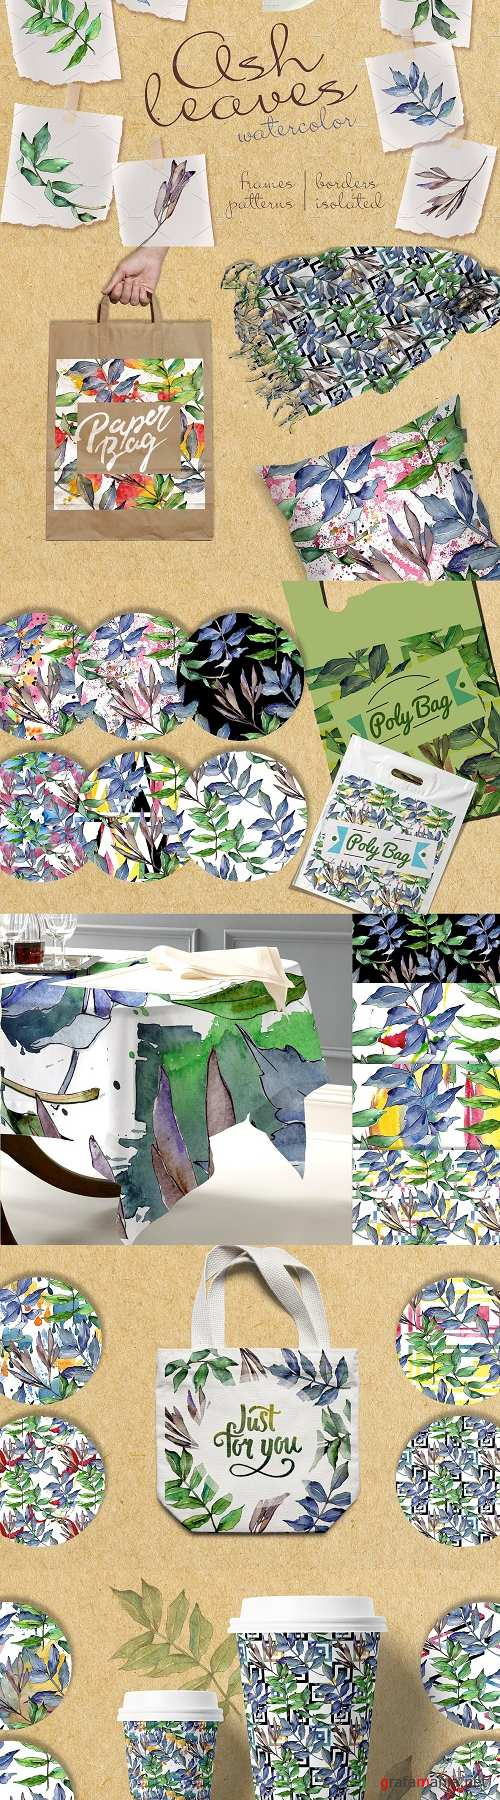 Ash Leaves PNG Watercolor Set - 2396211